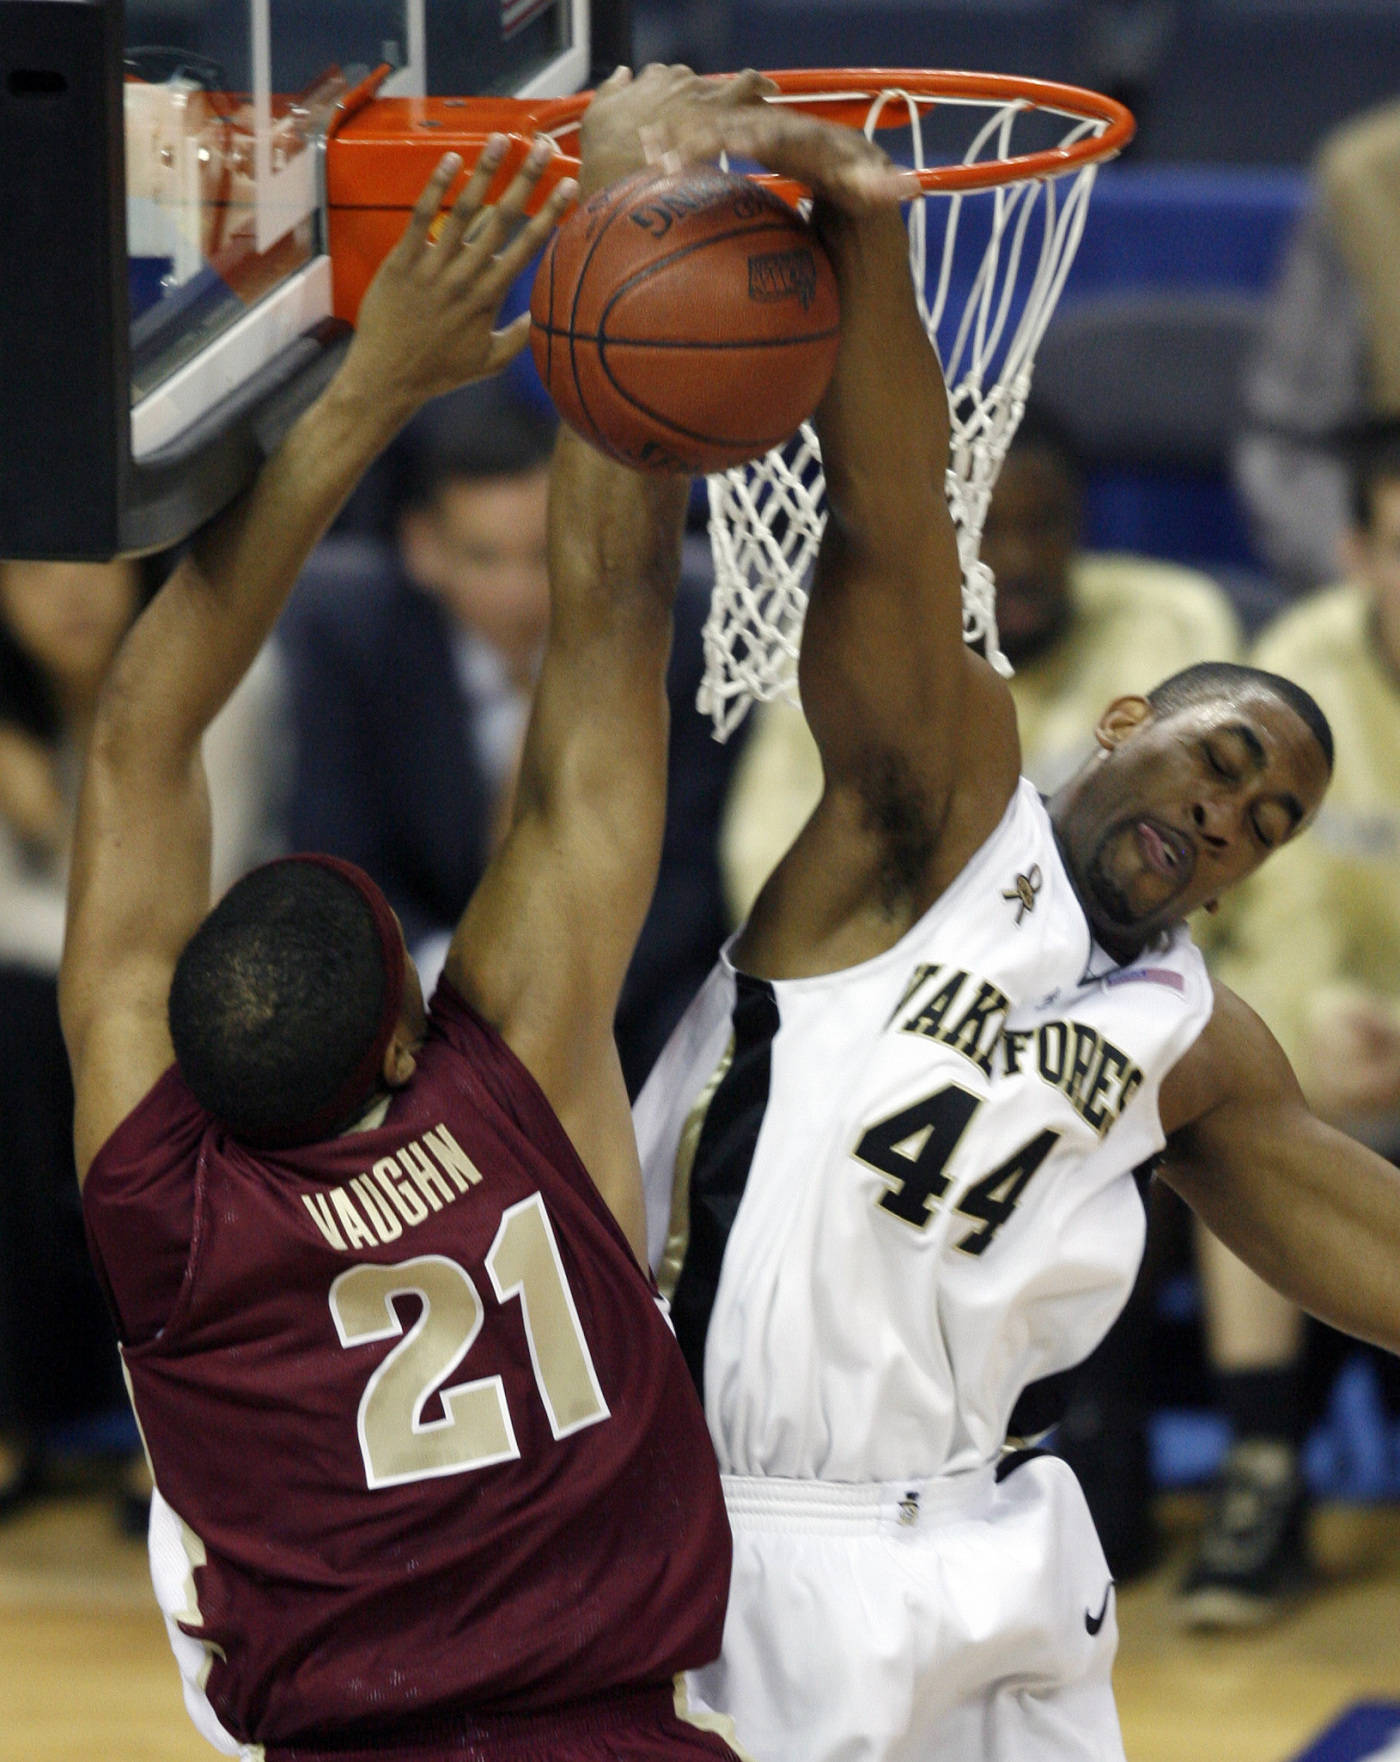 Wake Forest's David Weaver blocks a shot by Julian Vaughn during the first half. (AP Photo/Rick Havner)